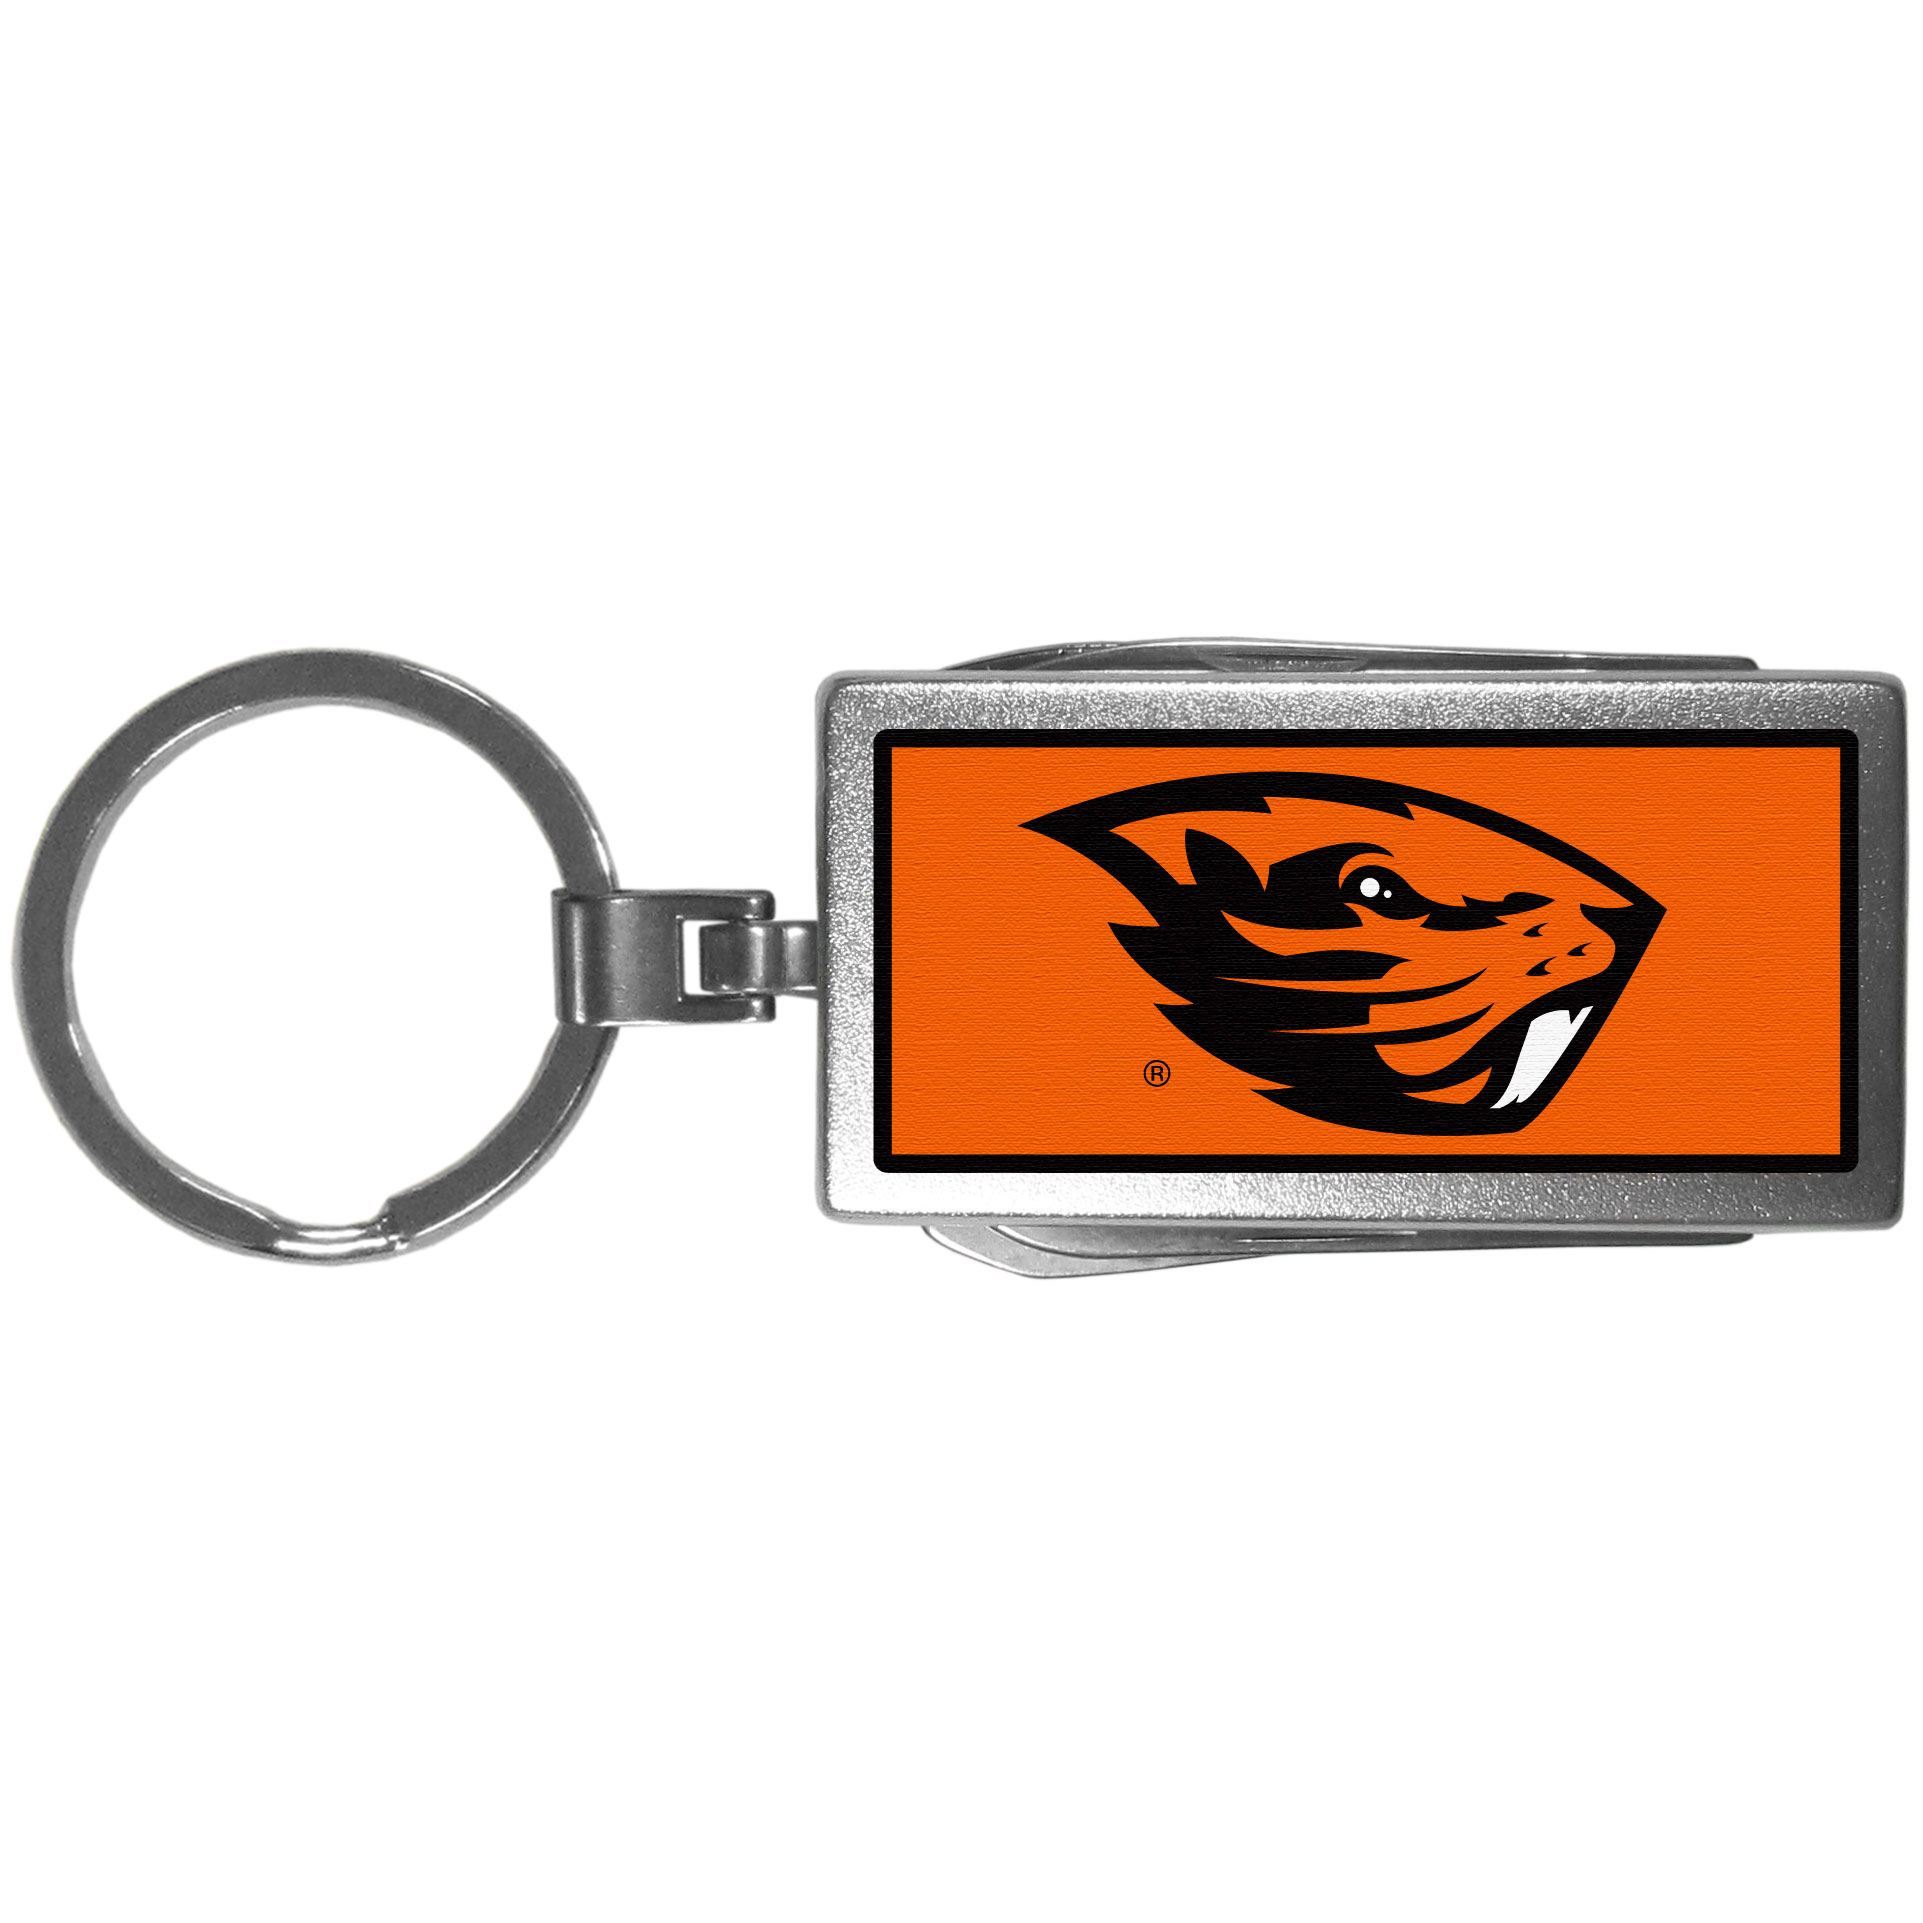 Oregon St. Beavers Multi-tool Key Chain, Logo - Be the hero at the tailgate, camping, or on a Friday night with your Oregon St. Beavers Multi-Tool Keychain which comes complete with bottle opener, scissors, knife, nail file and screw driver. Be it opening a package or a beverage Siskiyou's Multi-Tool Keychain goes wherever your keys do. The keychain hangs at 4 inches long when closed.